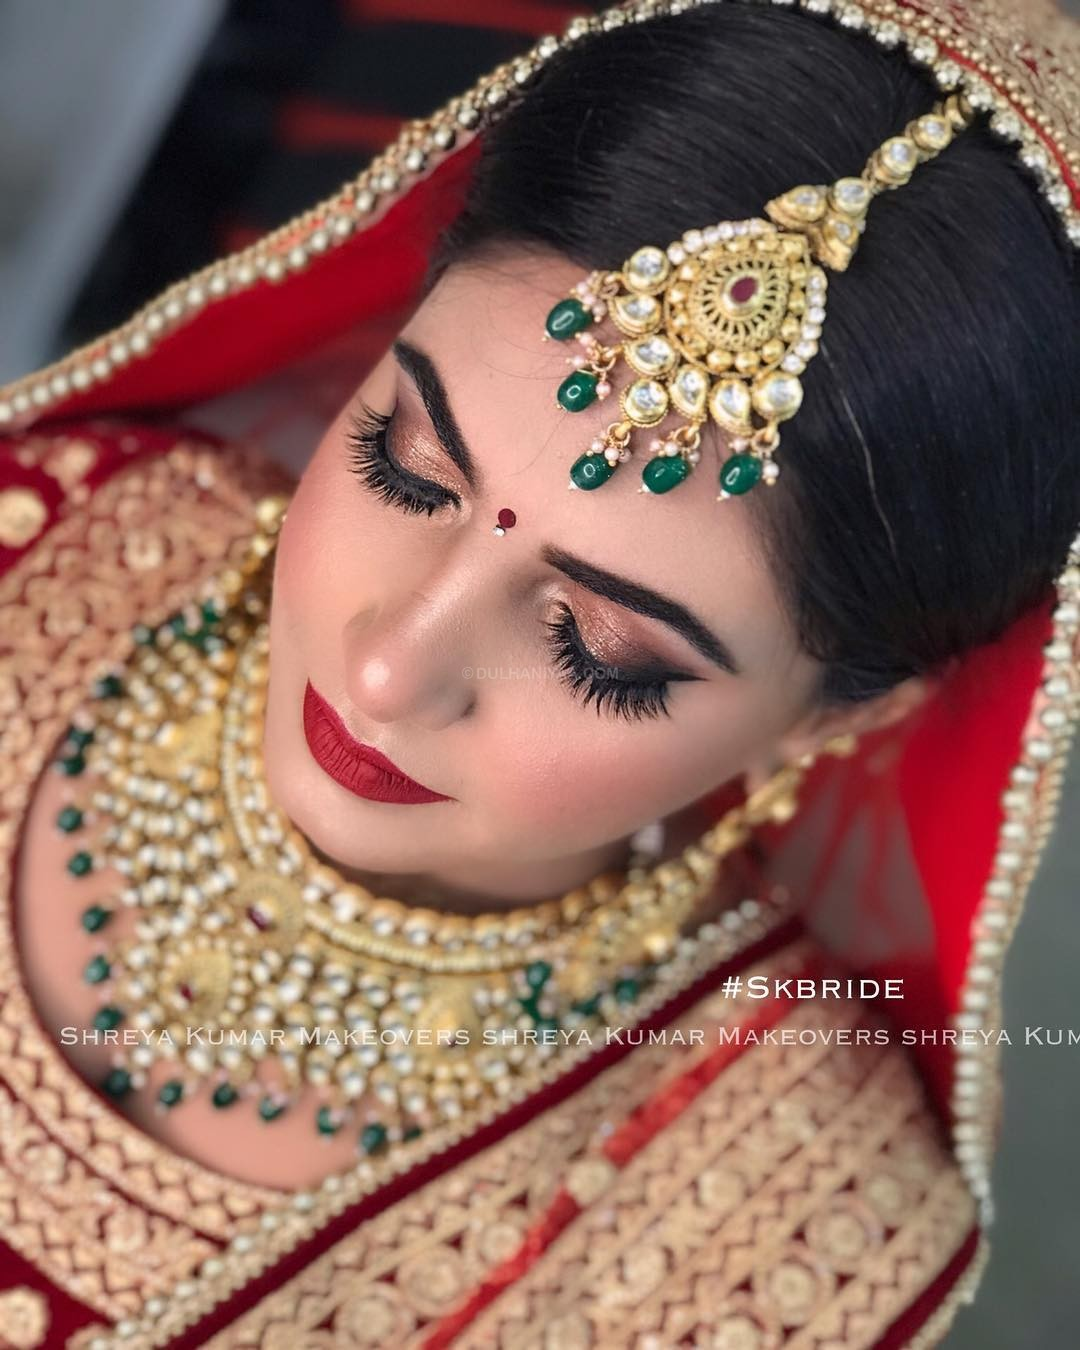 Shreya Kumar Makeovers